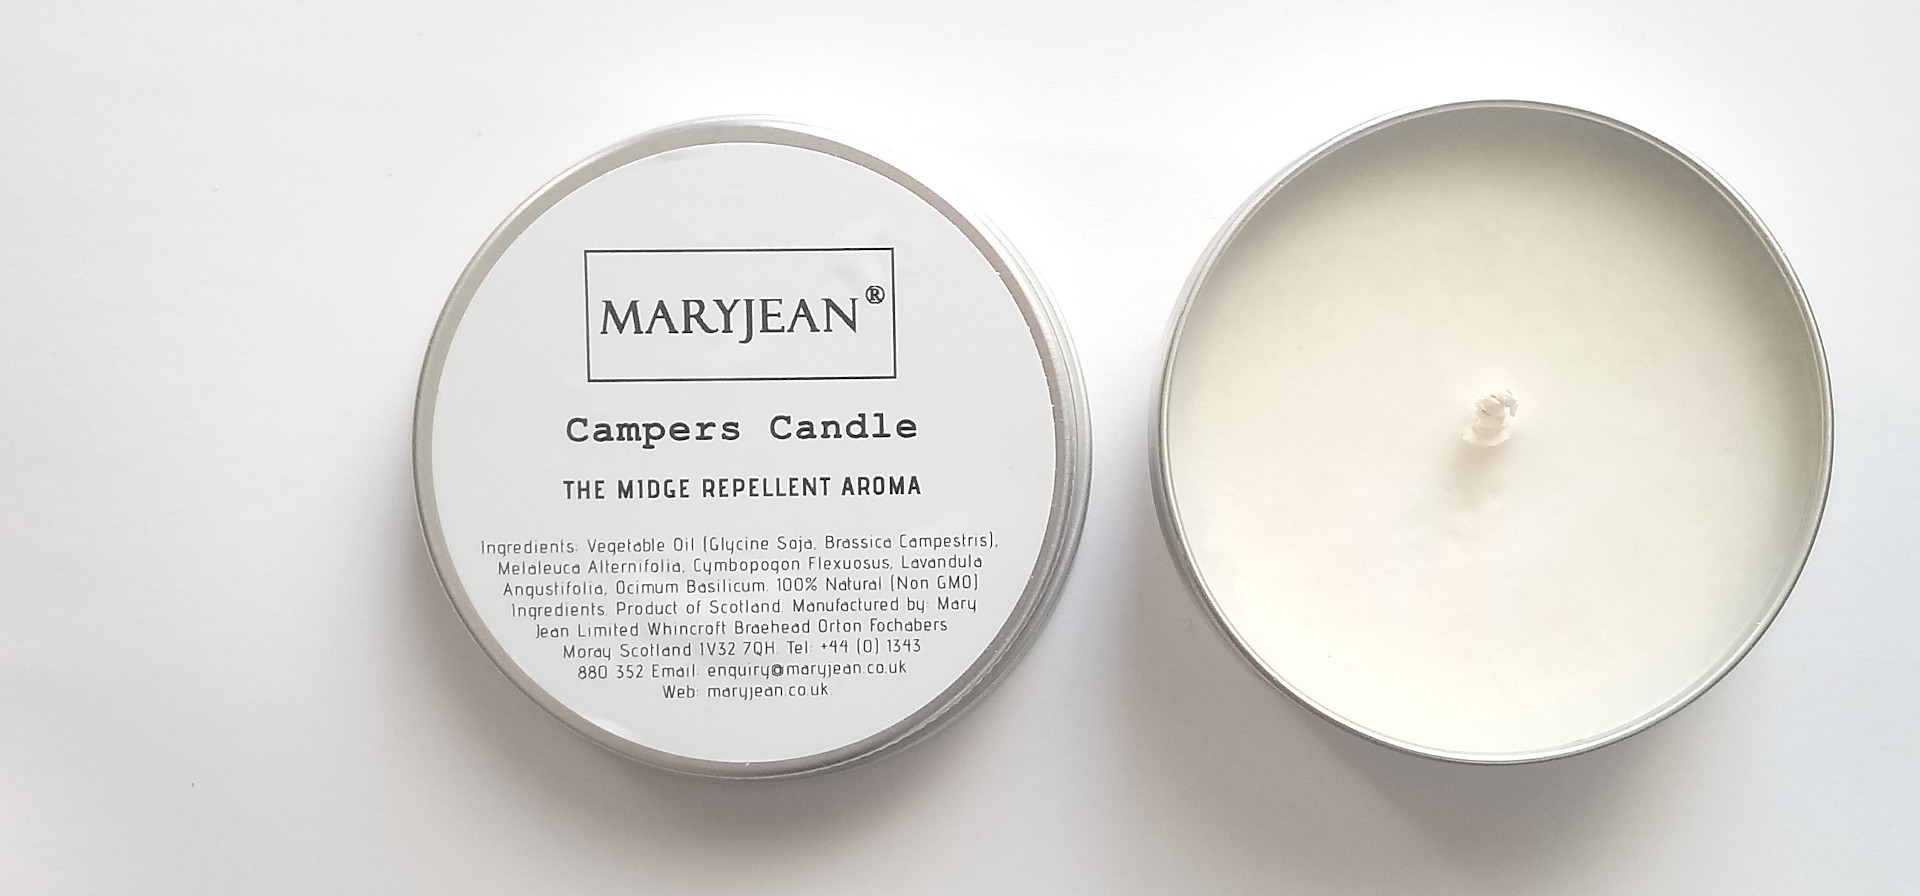 The Campers Candle, Outdoor living and Home Garden Midge Repellent Insect Aroma